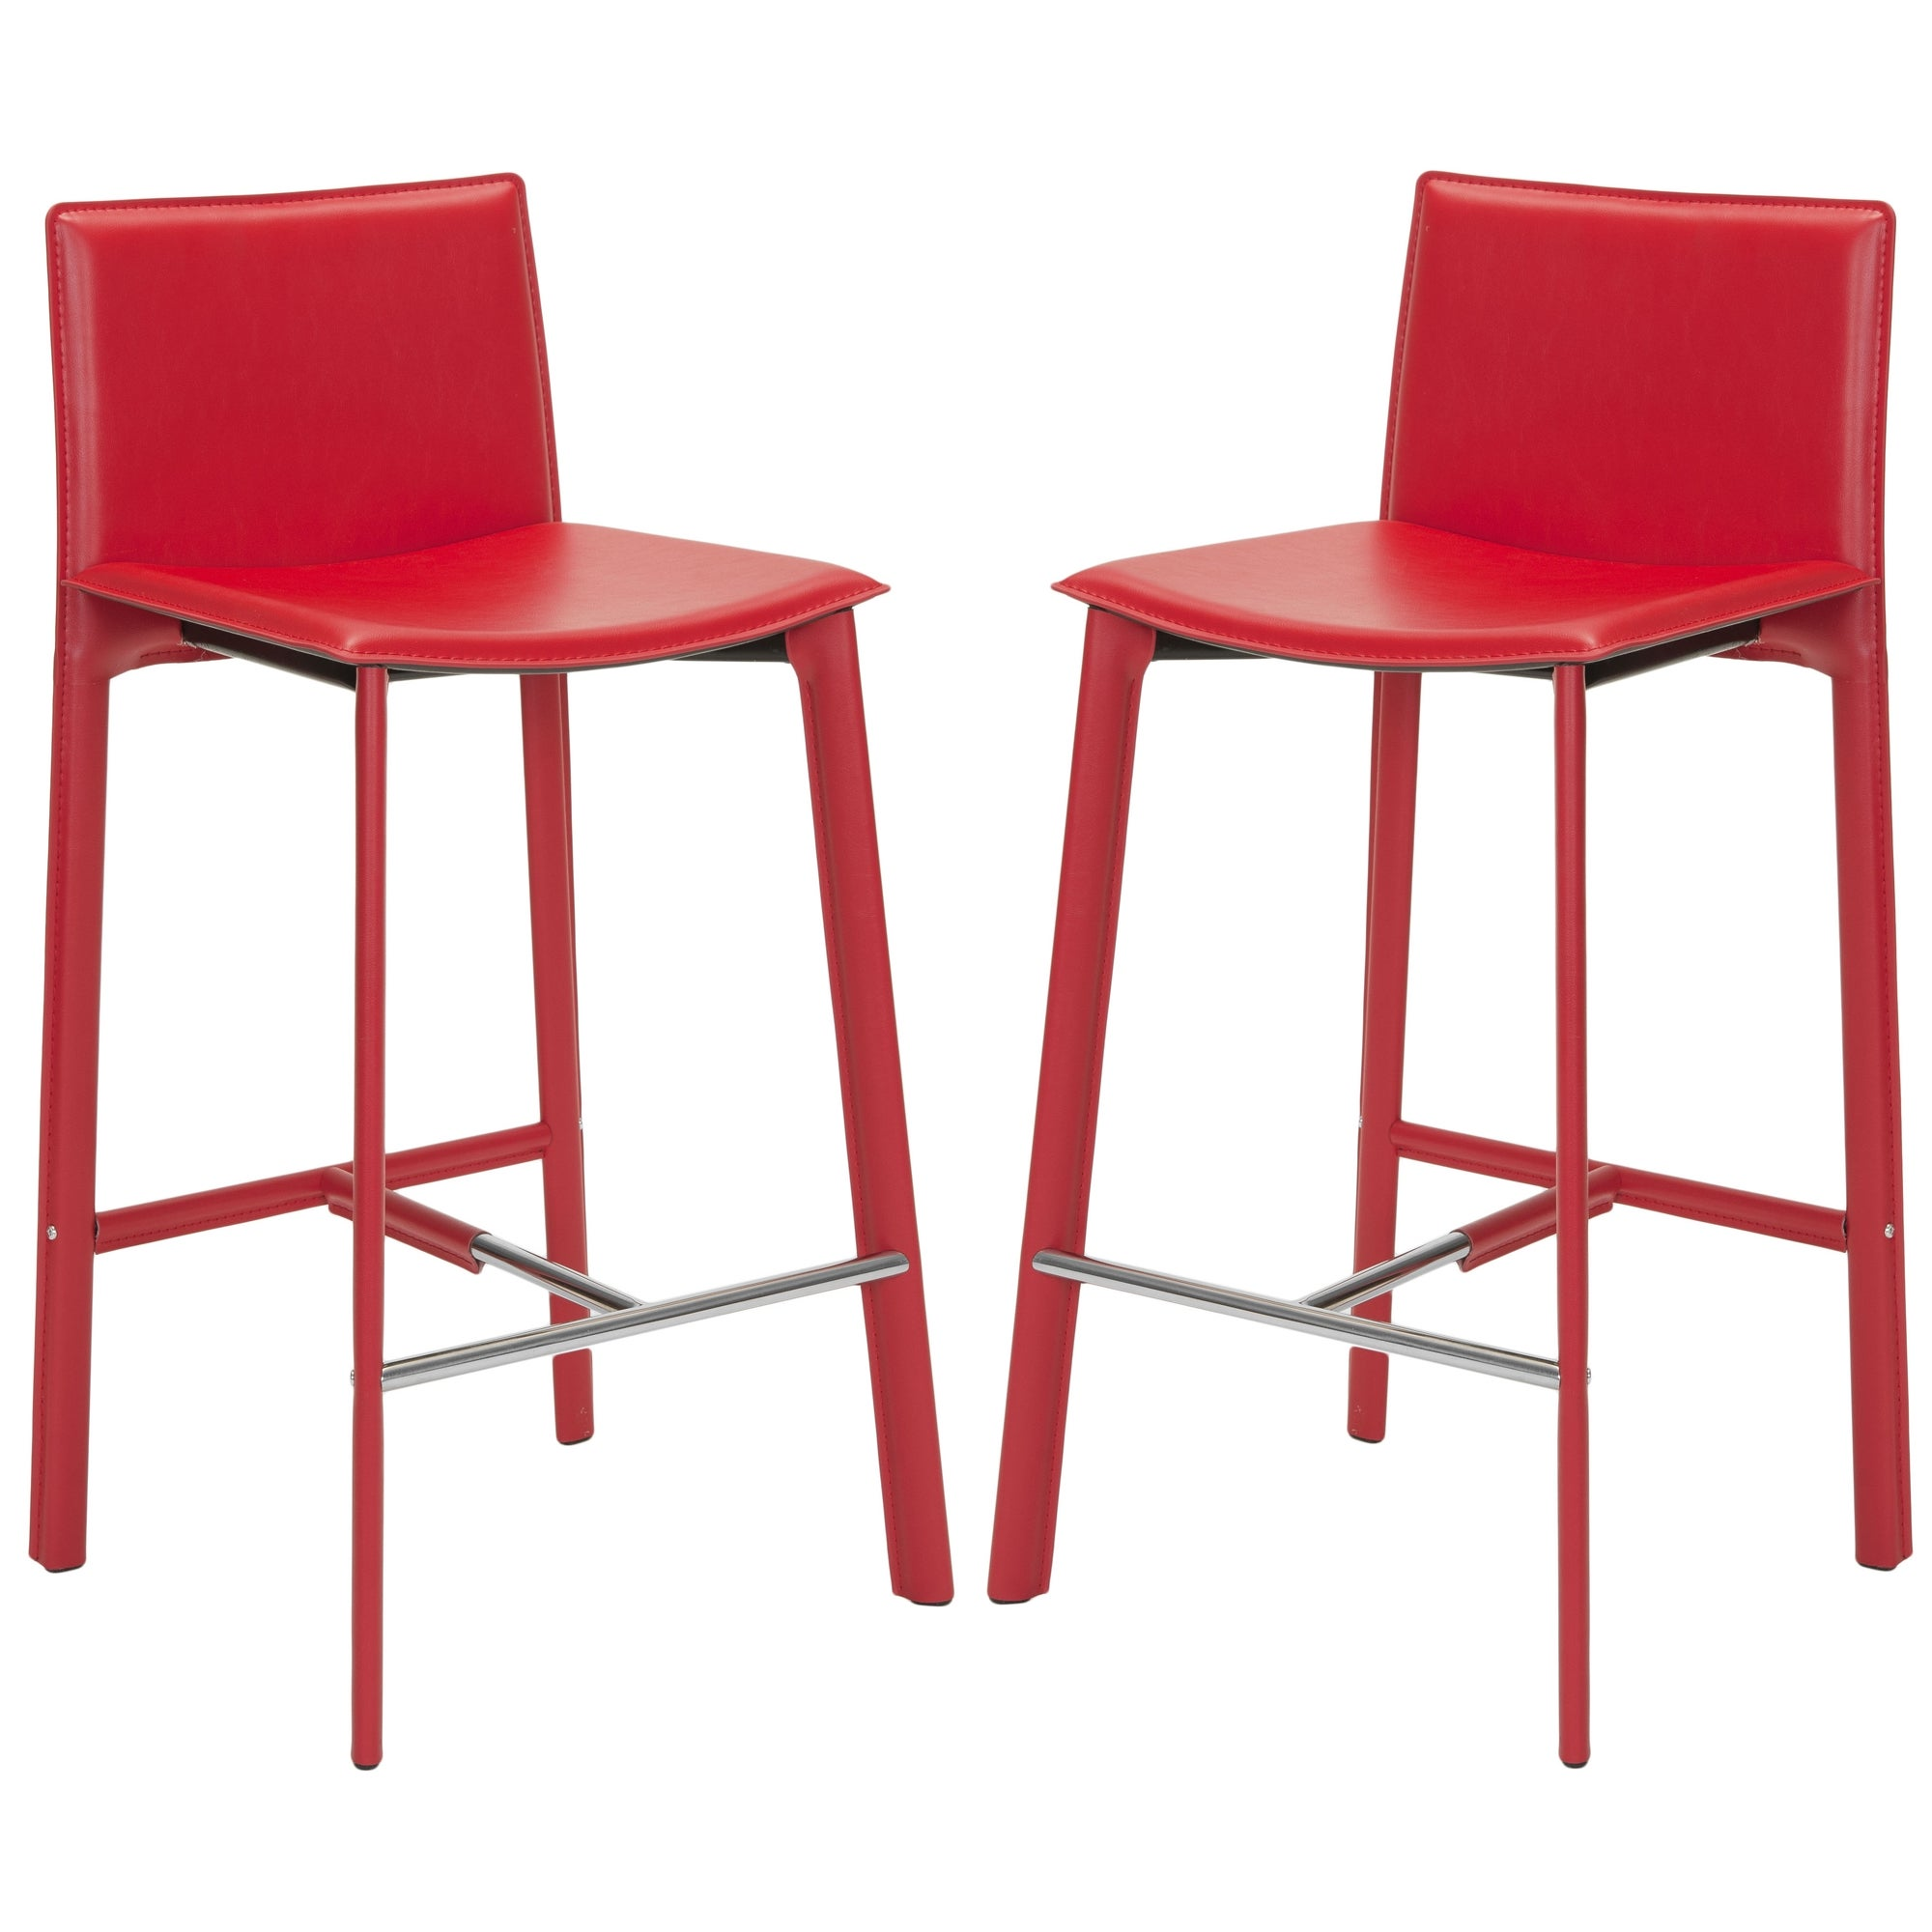 Remarkable Safavieh Mid Century 28 5 Inch Madison Red Leather Bar Stool Set Of 2 18 7 X 19 7 X 39 4 Alphanode Cool Chair Designs And Ideas Alphanodeonline